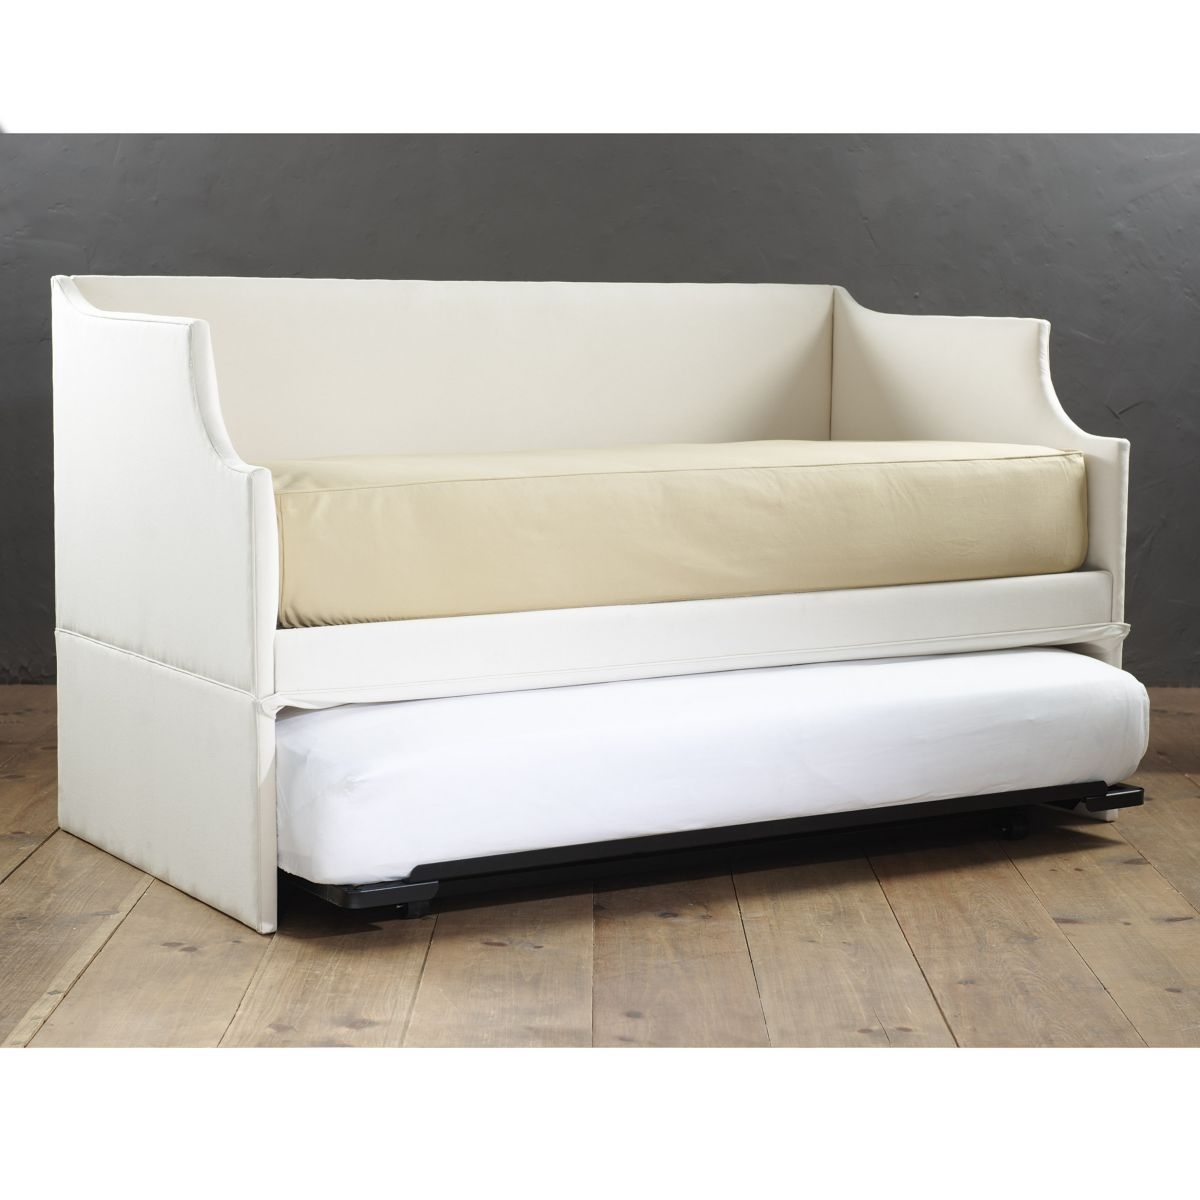 black and white futon covers designer futon covers   foter  rh   foter